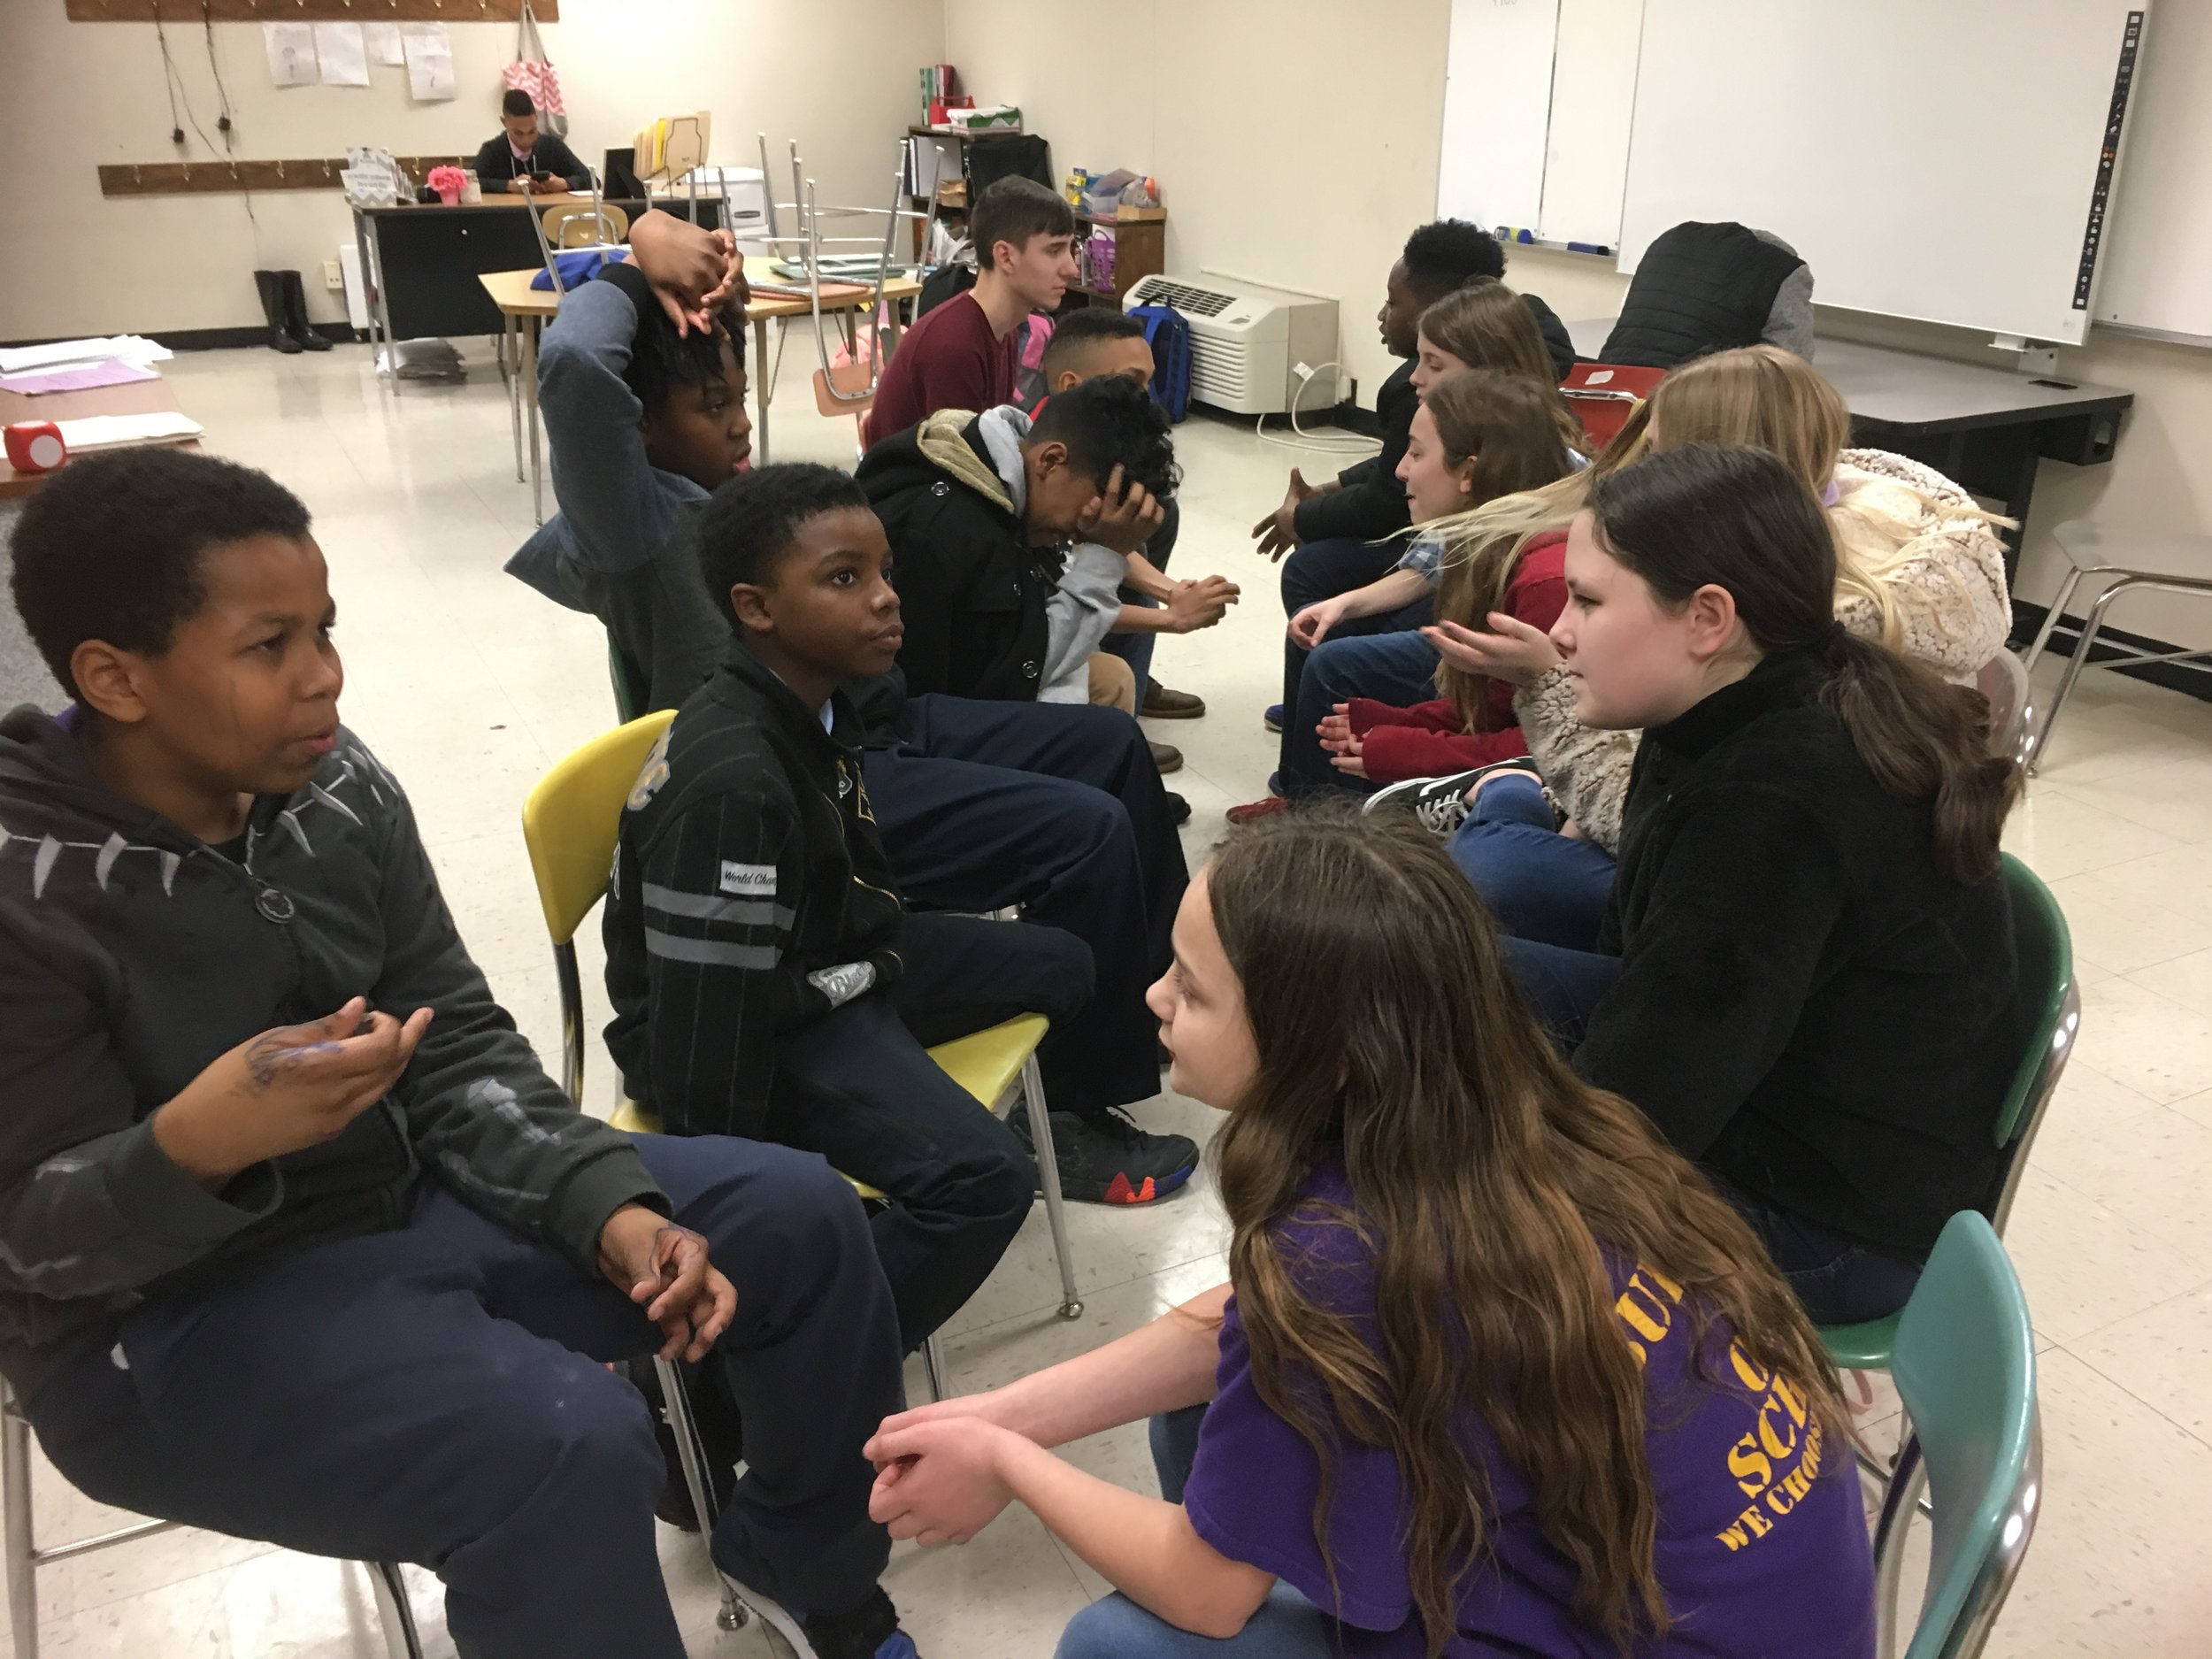 """""""Speed Conversations"""" was a game they played and had to hold a conversation by making eye contact and asking good questions based on a prompt given."""